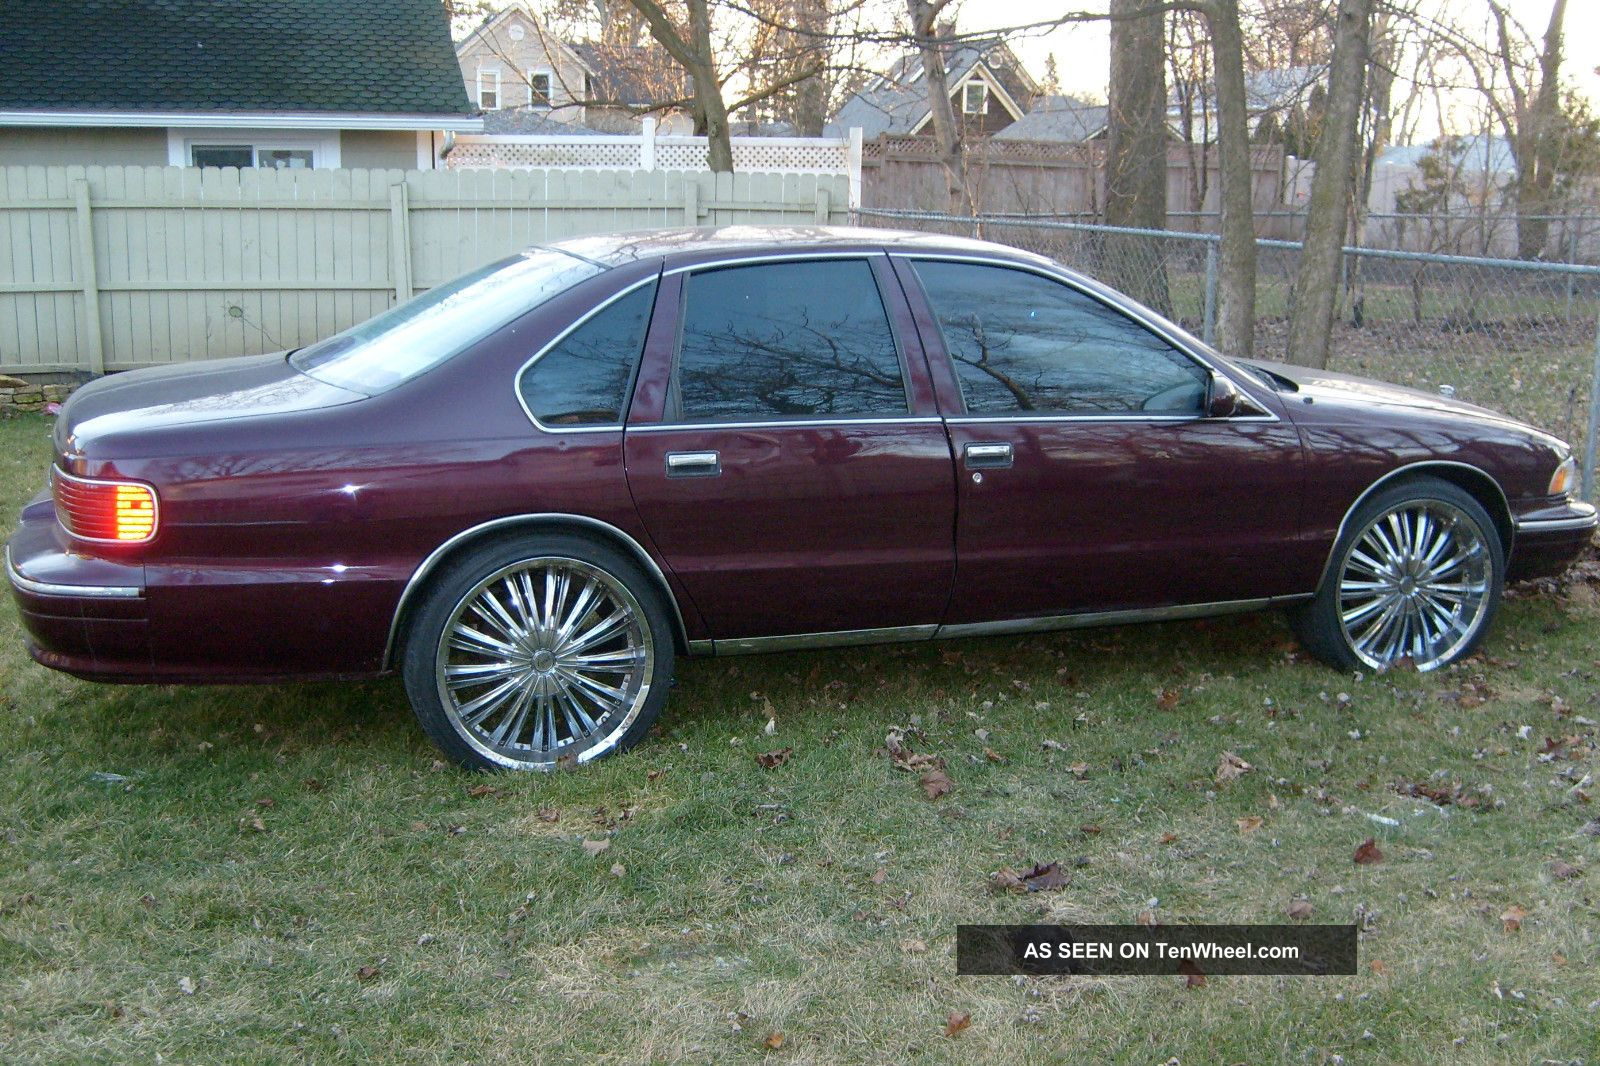 1996 Chevrolet Caprice Classic Sedan 4  Door 5. 7l Caprice photo